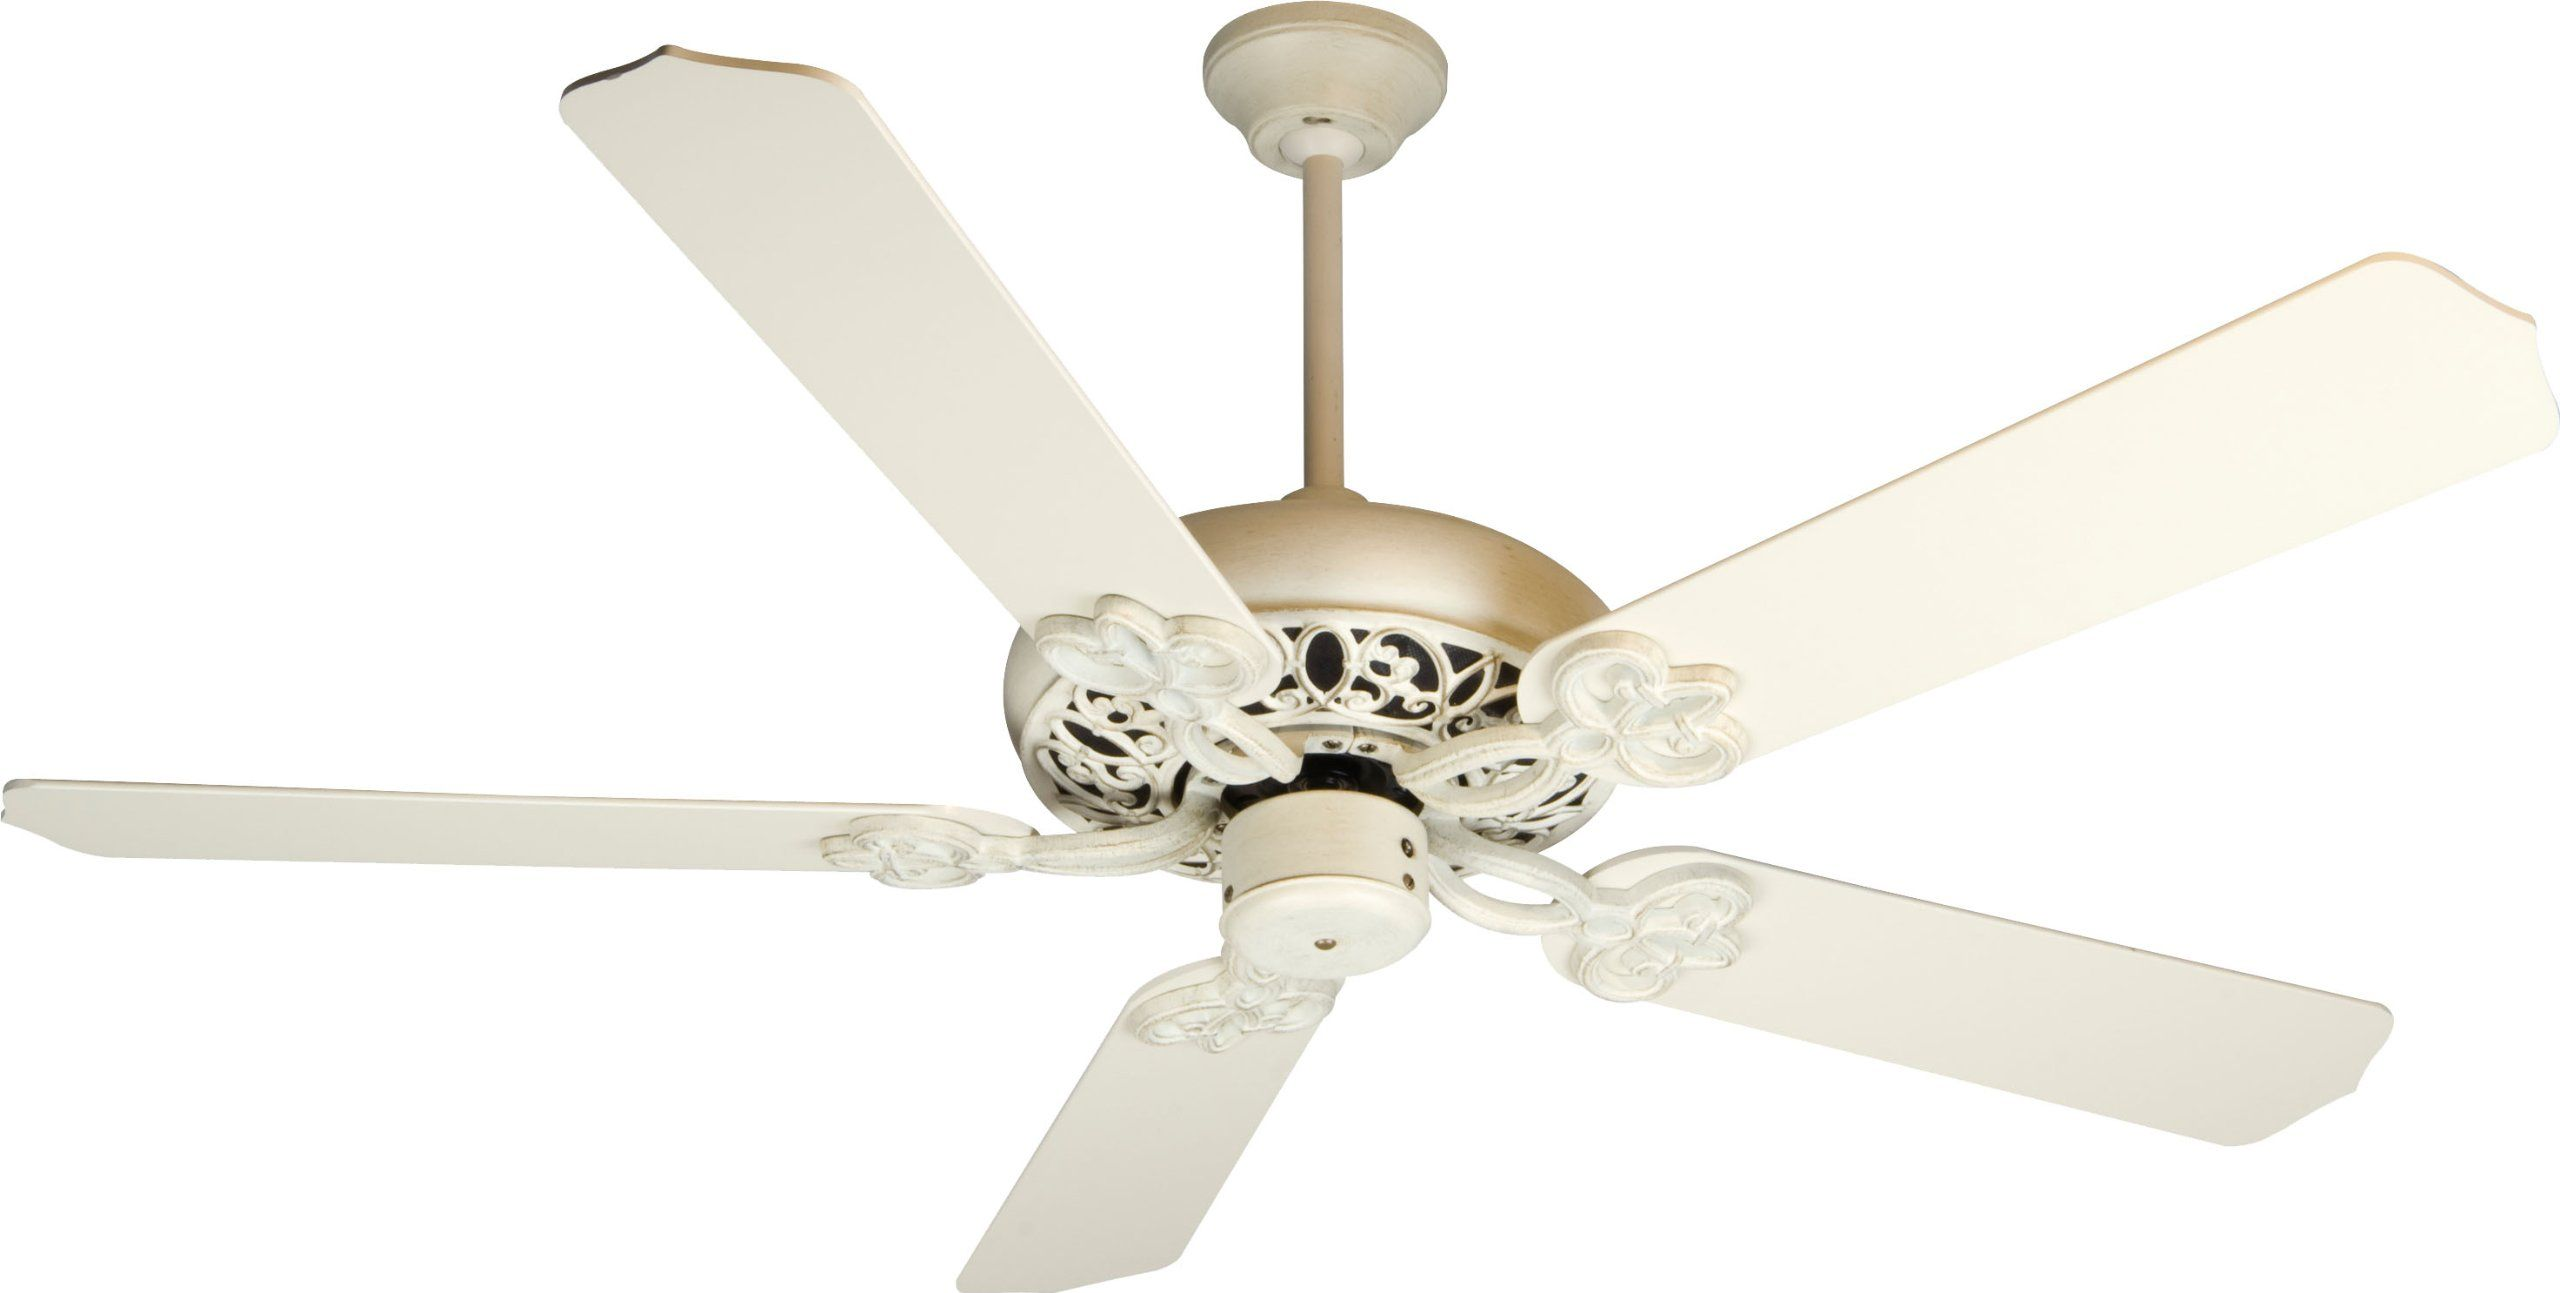 Distressed Wood Ceiling Fan Craftmade Cc52awd Cecilia Antique White Energy Star 52